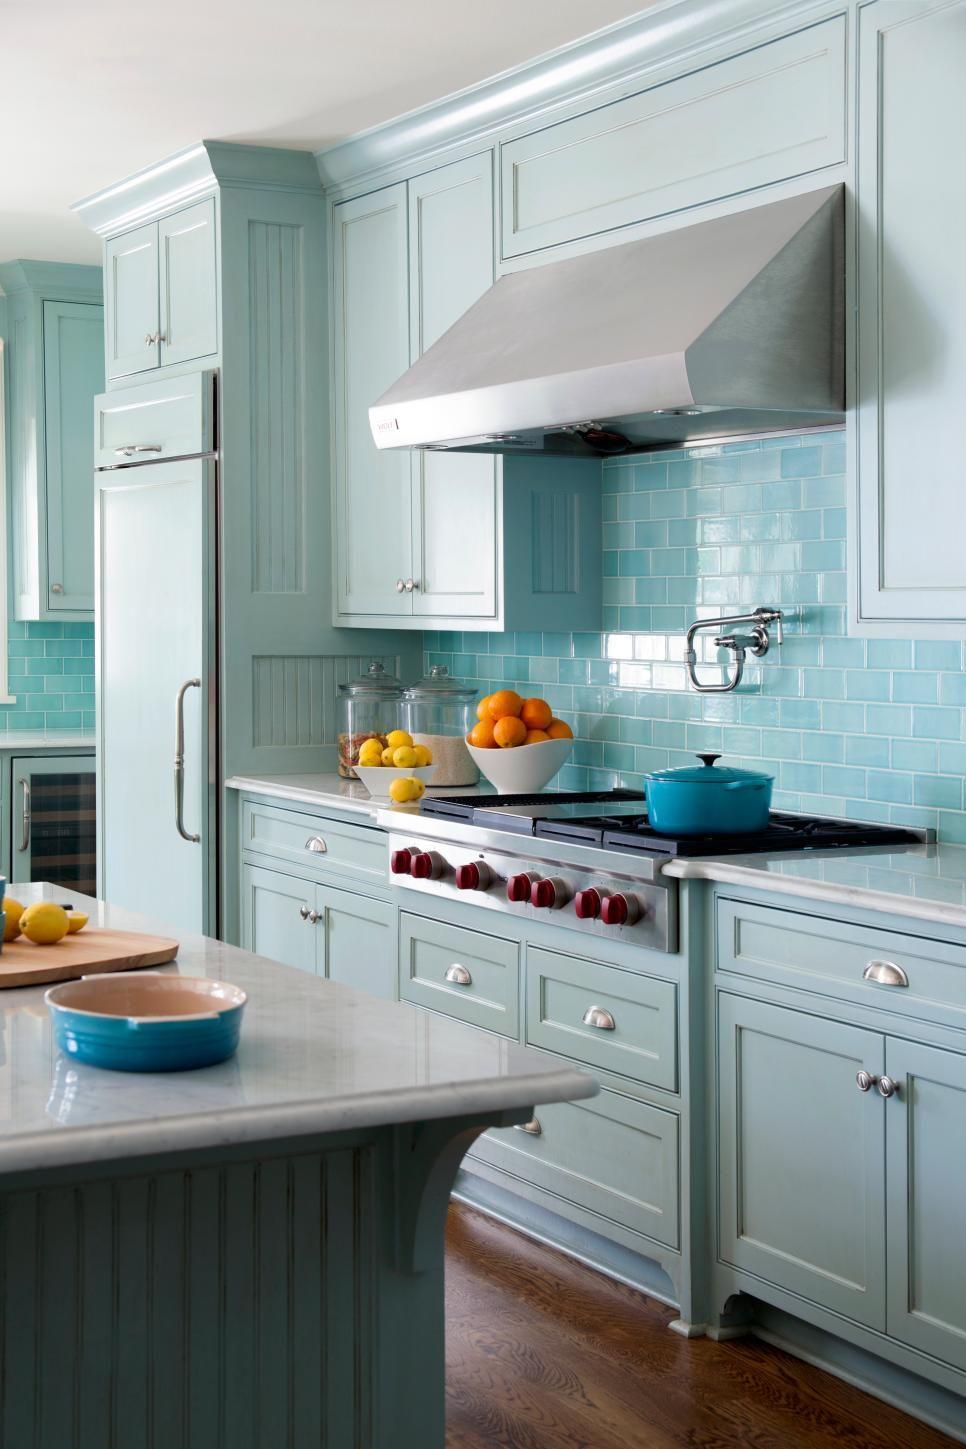 robin s egg blue color and design ideas kitchens blue kitchen cabinets turquoise kitchen on kitchen decor blue id=91553